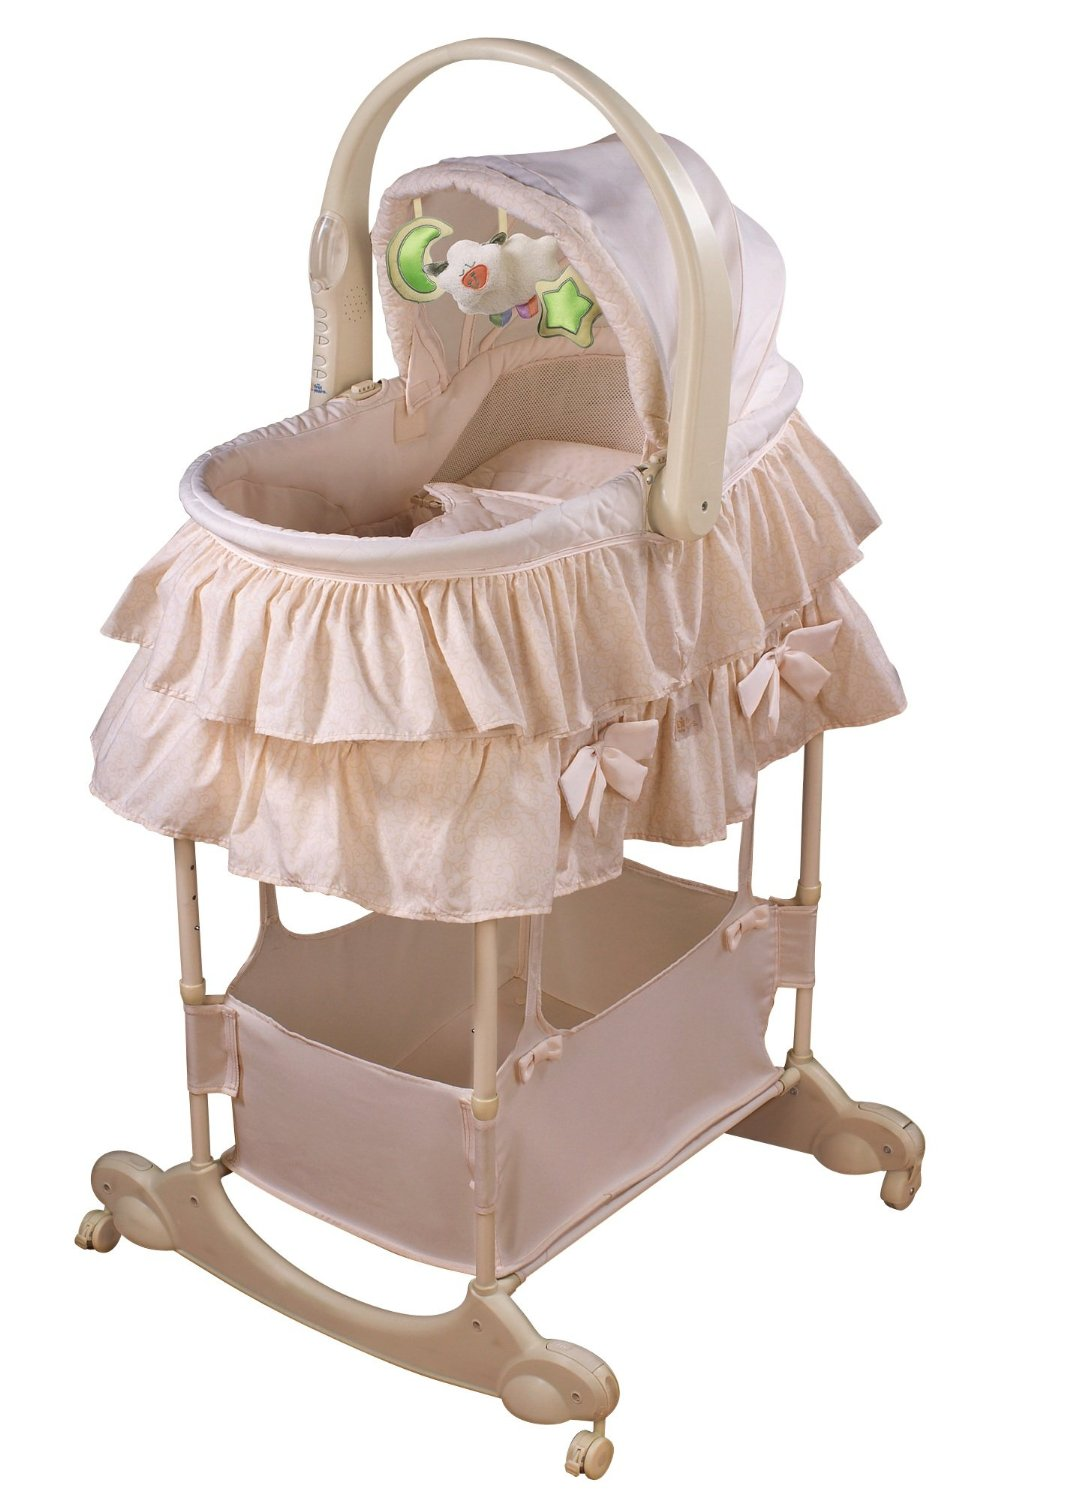 Bassinet vs. Crib - New Kids Center